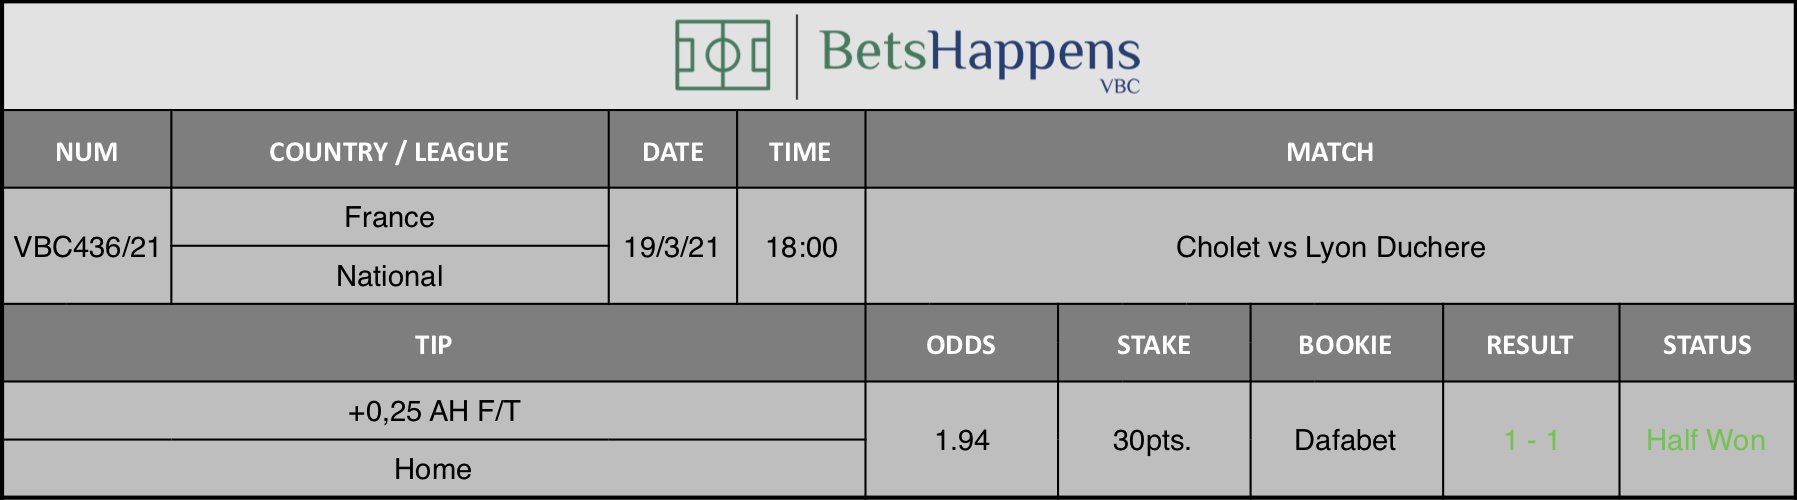 Results of our tip for the Cholet vs Lyon Duchere match where +0,25 AH F/T  Home is recommended.